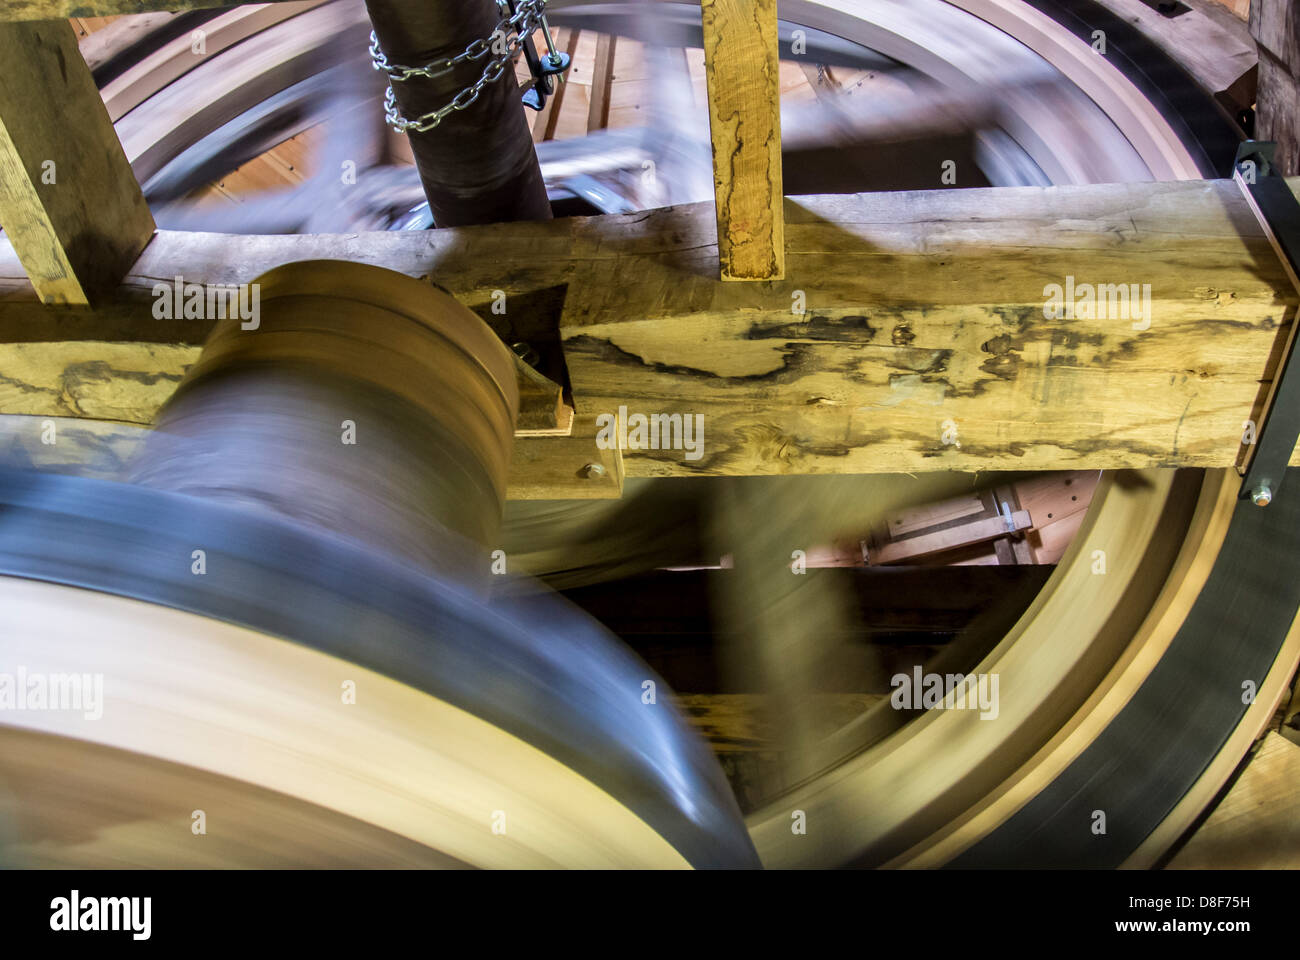 Cog wheels and bearing on sails in cap at Holgate Windmill, York, UK - Stock Image